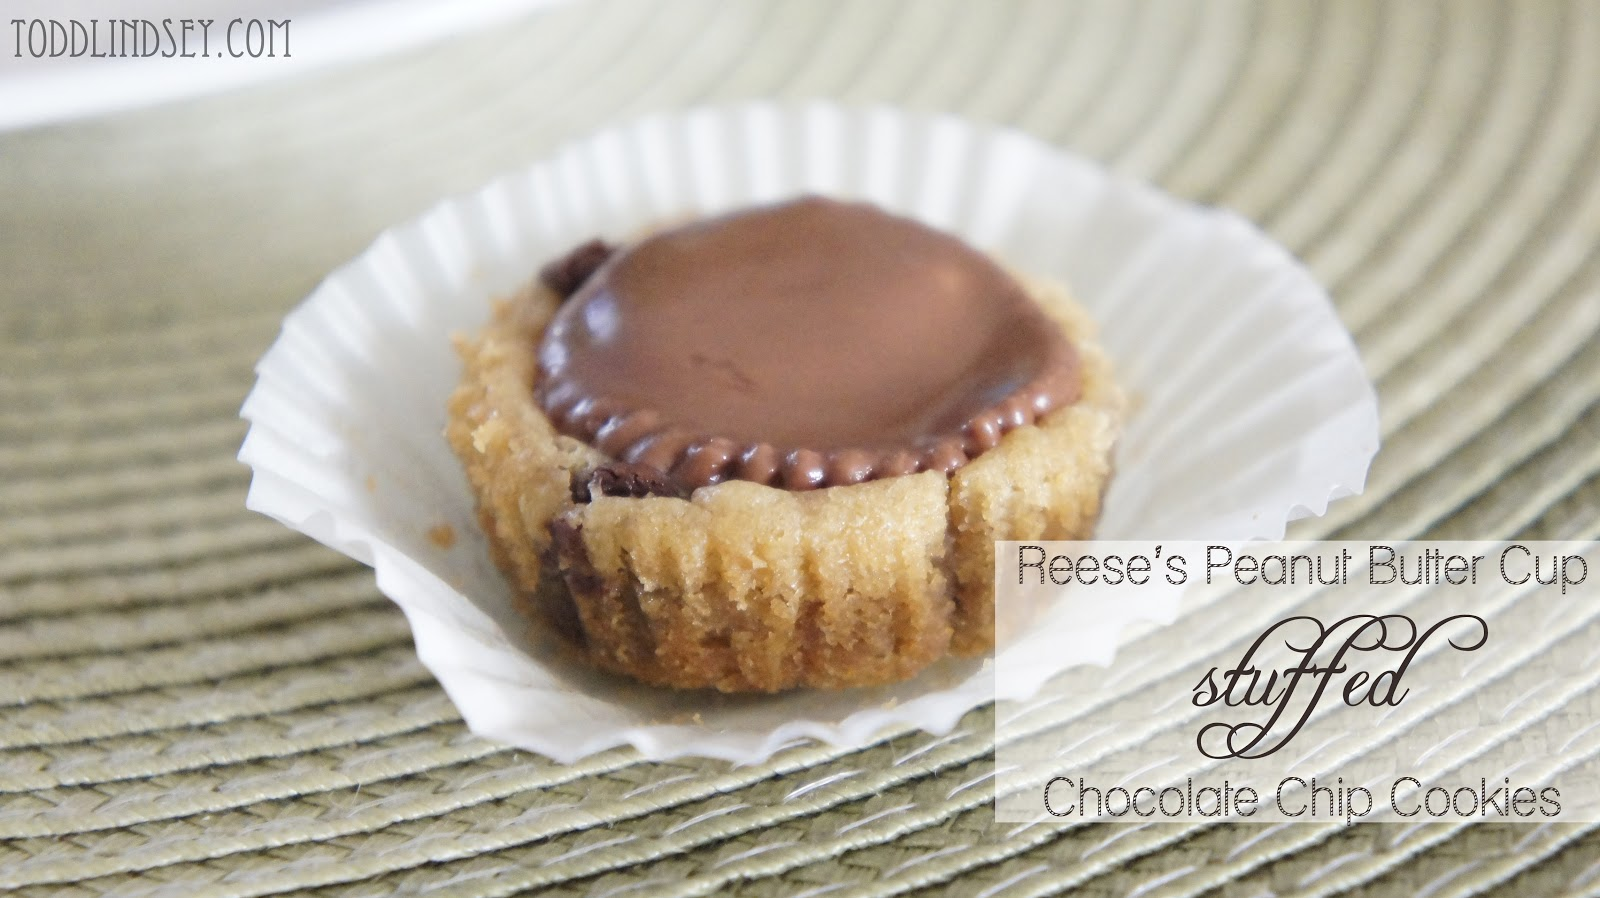 ... & Lindsey: Reese's Peanut Butter Cup Stuffed Chocolate Chip Cookies